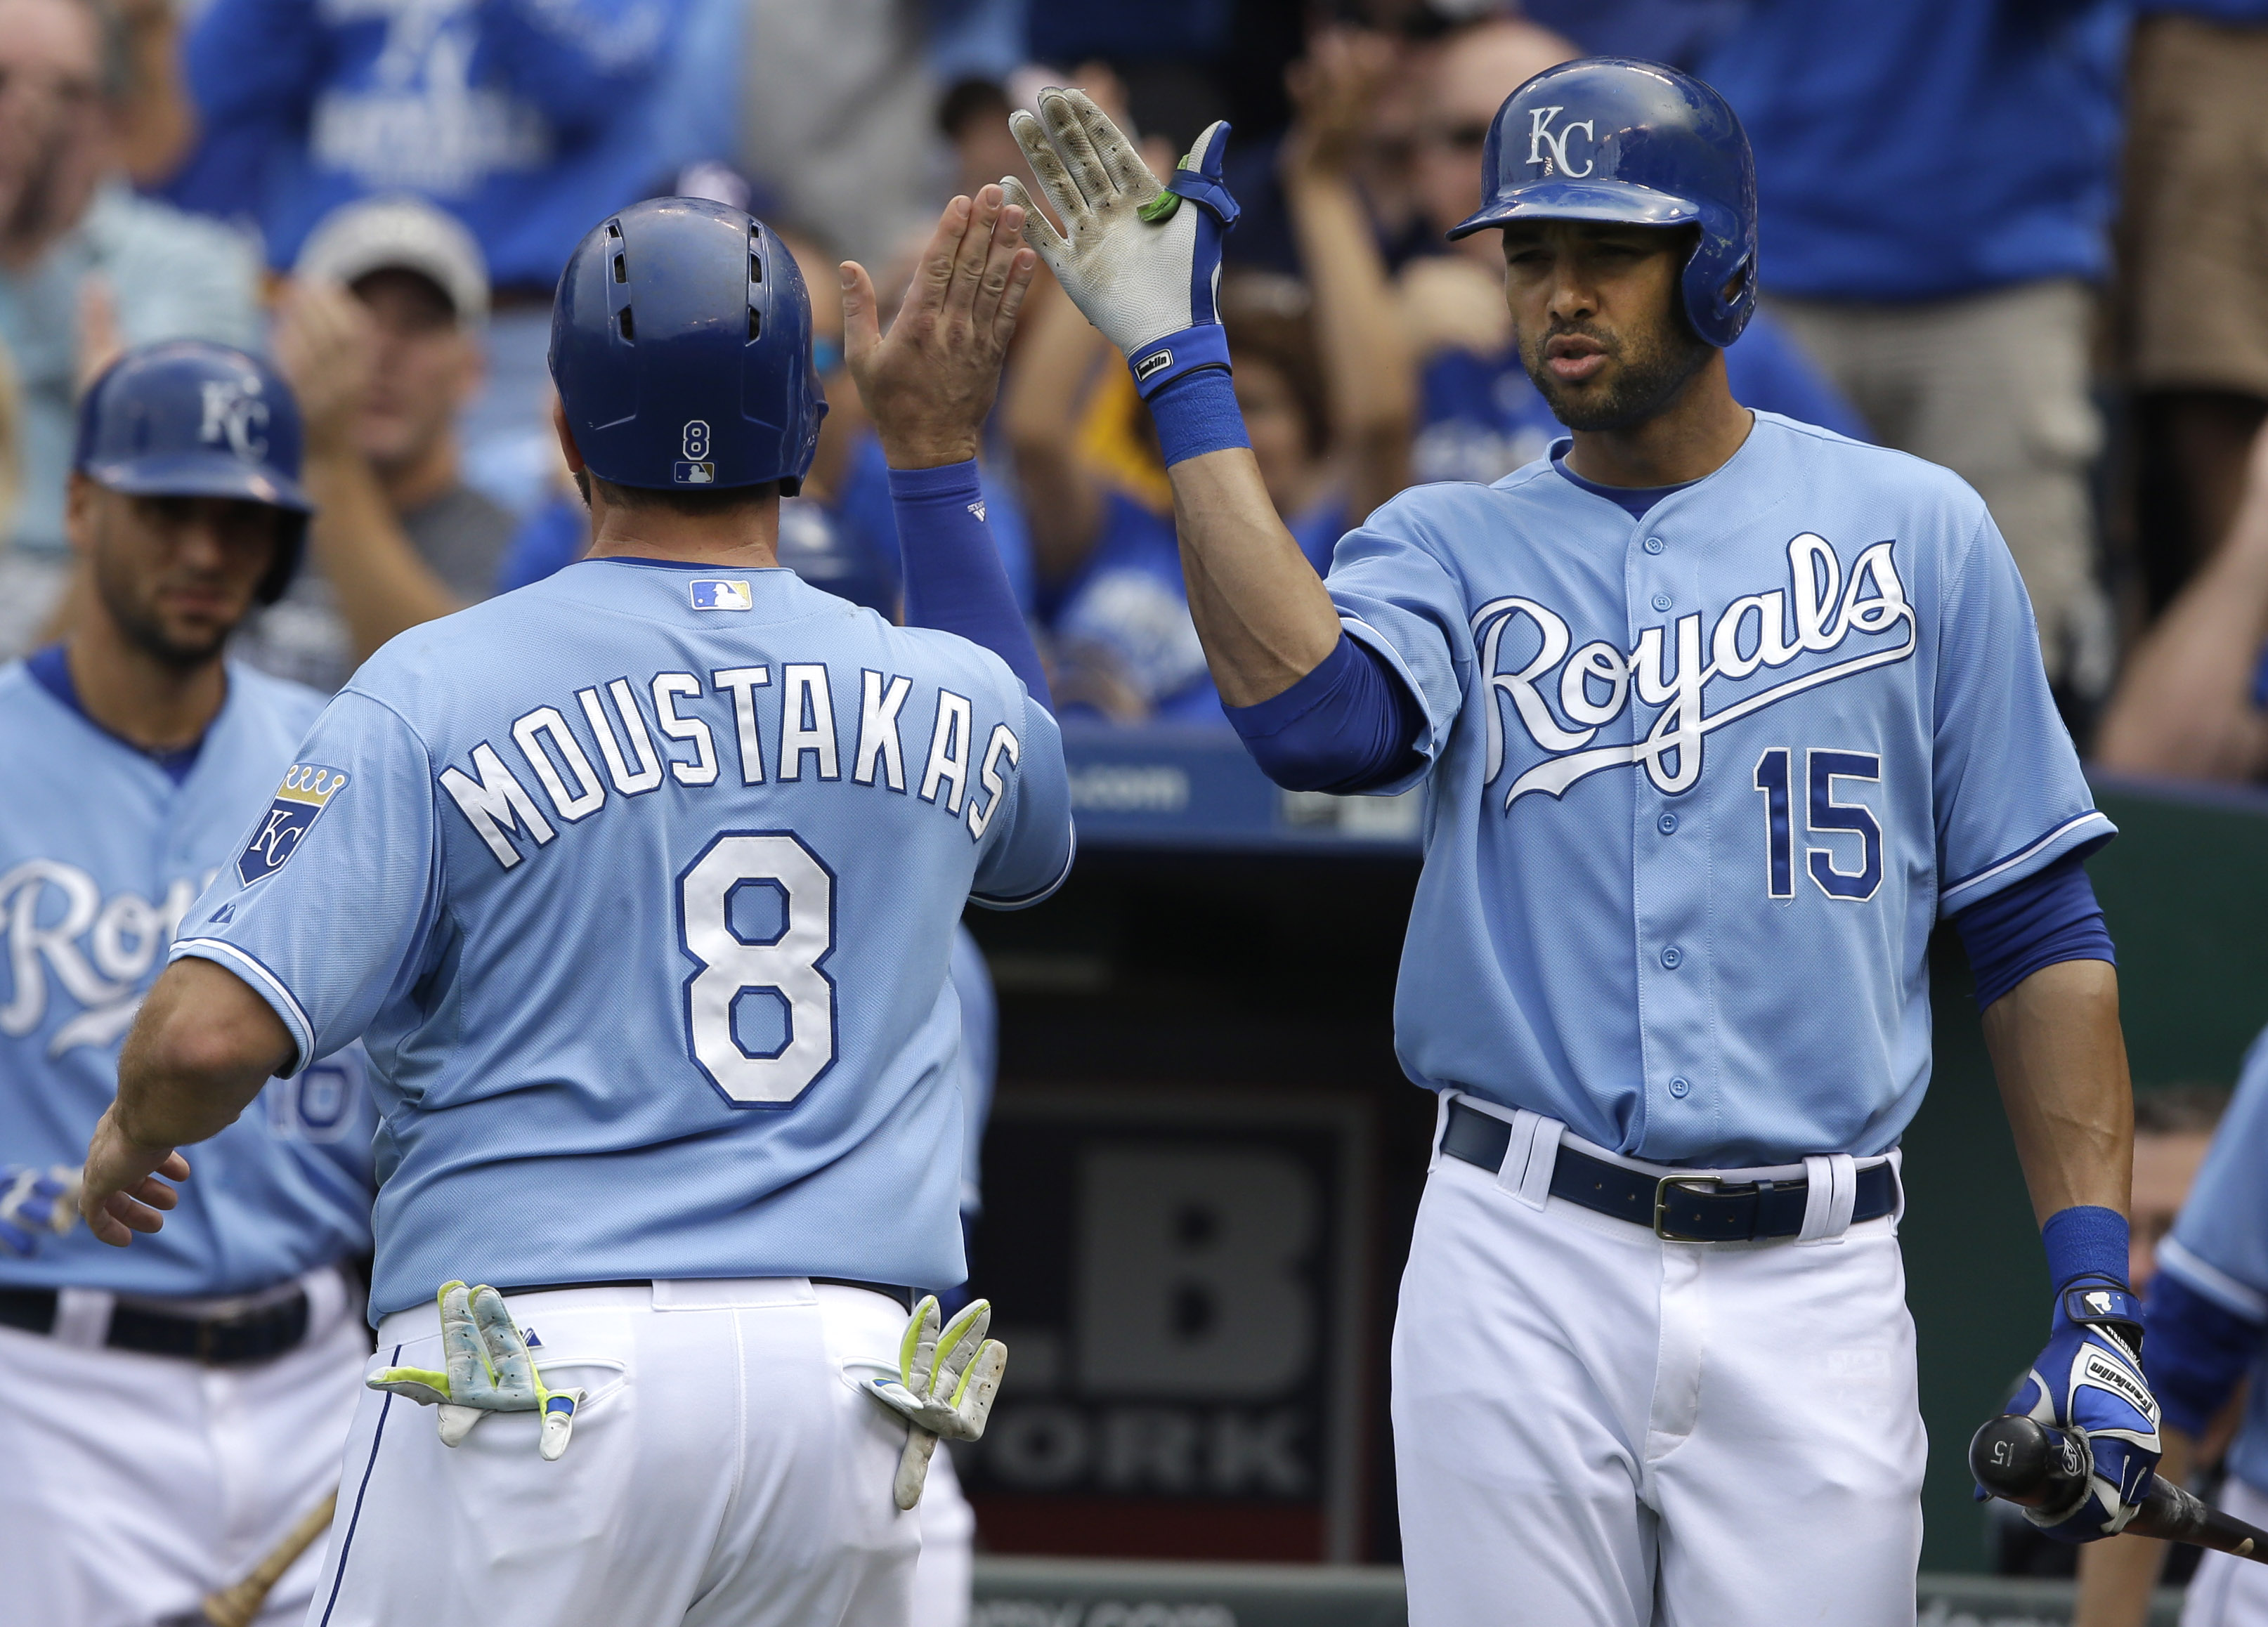 Kansas City Royals' Mike Moustakas (8) is congratulated by on-deck batter Alex Rios (15) after scoring on a single by teammate Salvador Perez during the fourth inning of a baseball game against the Baltimore Orioles at Kauffman Stadium in Kansas City, Mo.